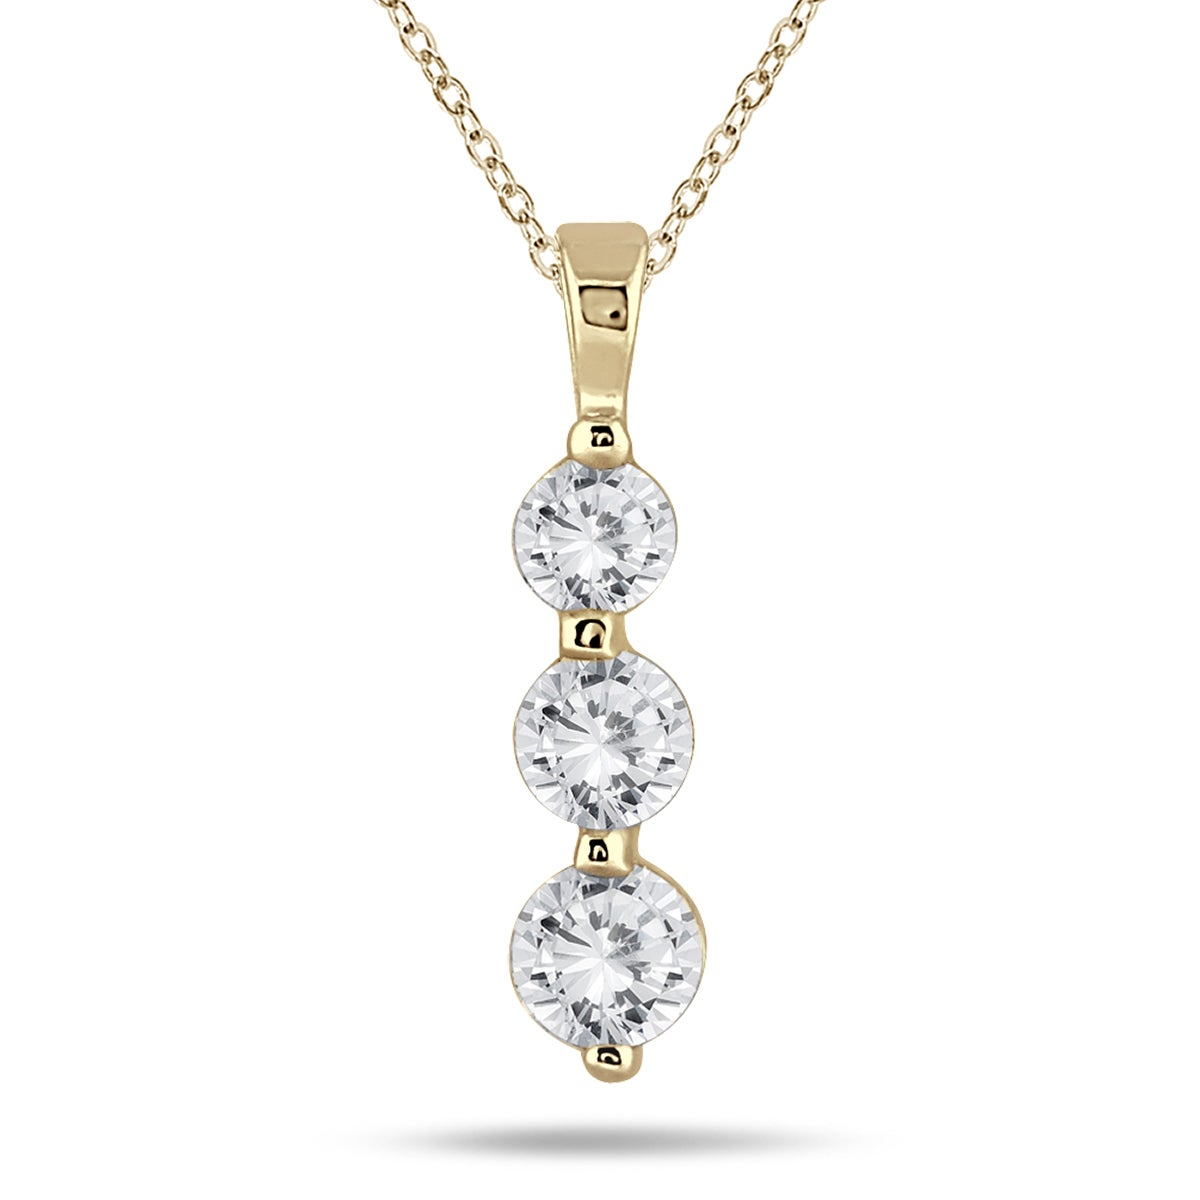 ct layer fpx product necklace wid qlt tif graduated op t exclusive shop in resmode diamond bezel white pdpimgshortdescription gold comp w sharpen usm